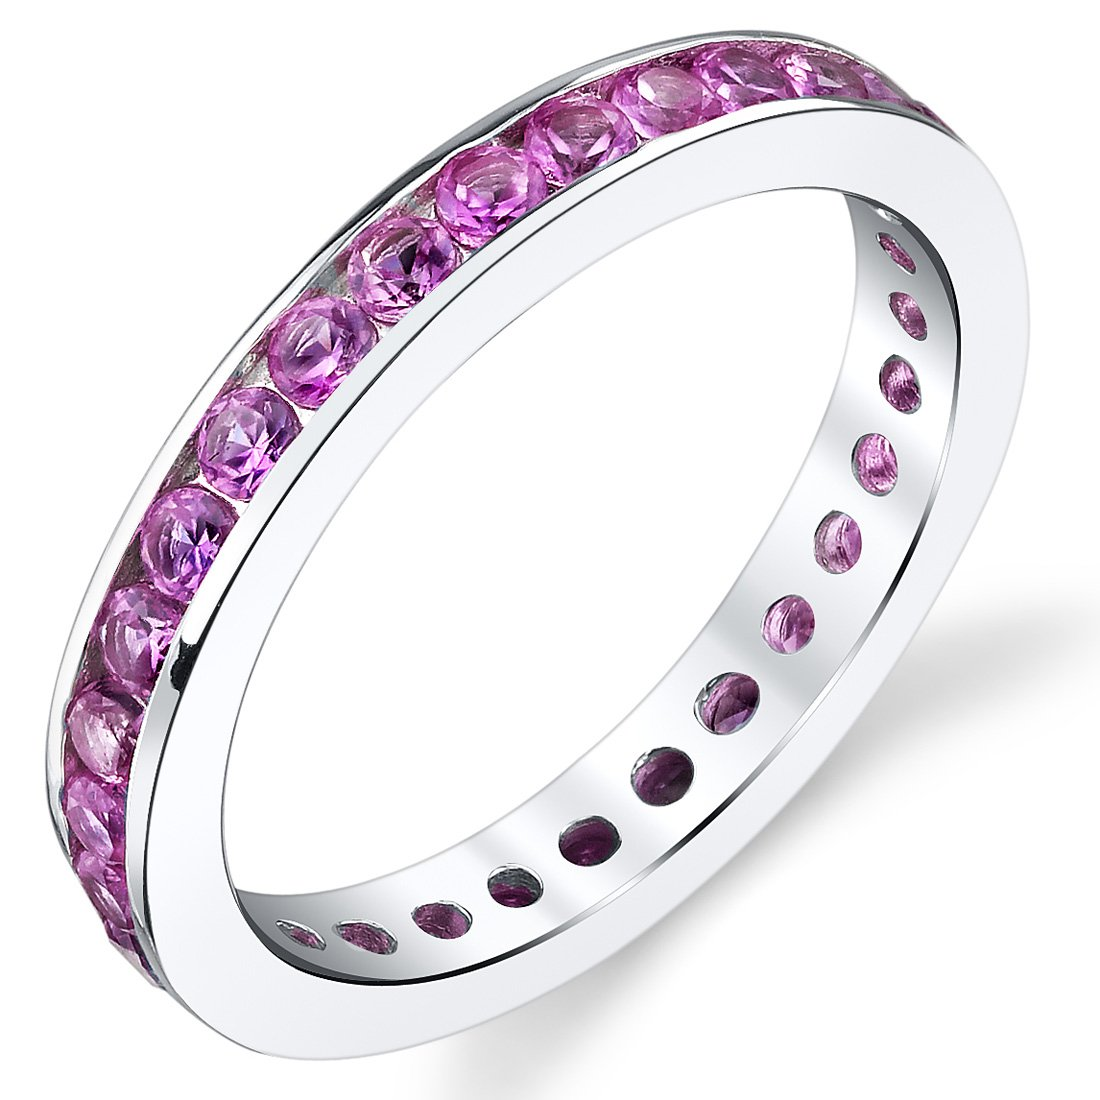 1.50 Carats Created Pink Sapphire Eternity Ring Sterling Silver Sizes 5 to 9 Peora